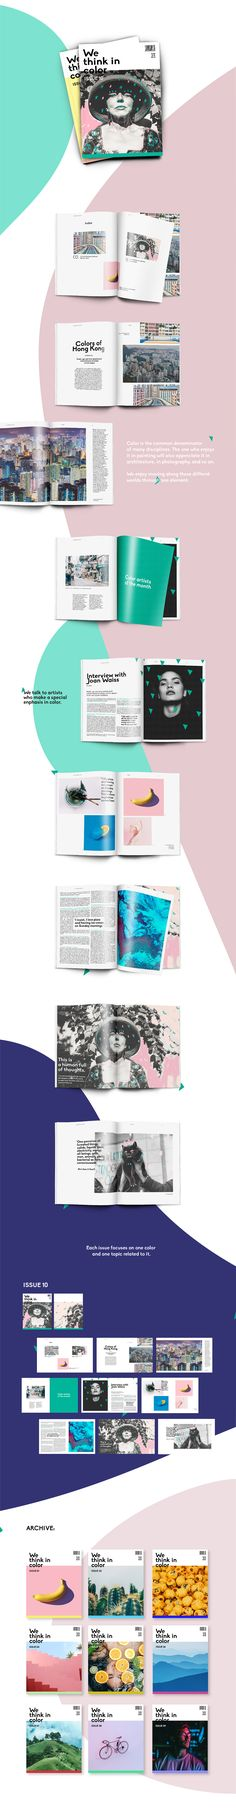 "Echa un vistazo a mi proyecto @Behance: ""We Think in Color zine - Editorial workshop with Rifle"" https://www.behance.net/gallery/58374813/We-Think-in-Color-zine-Editorial-workshop-with-Rifle"